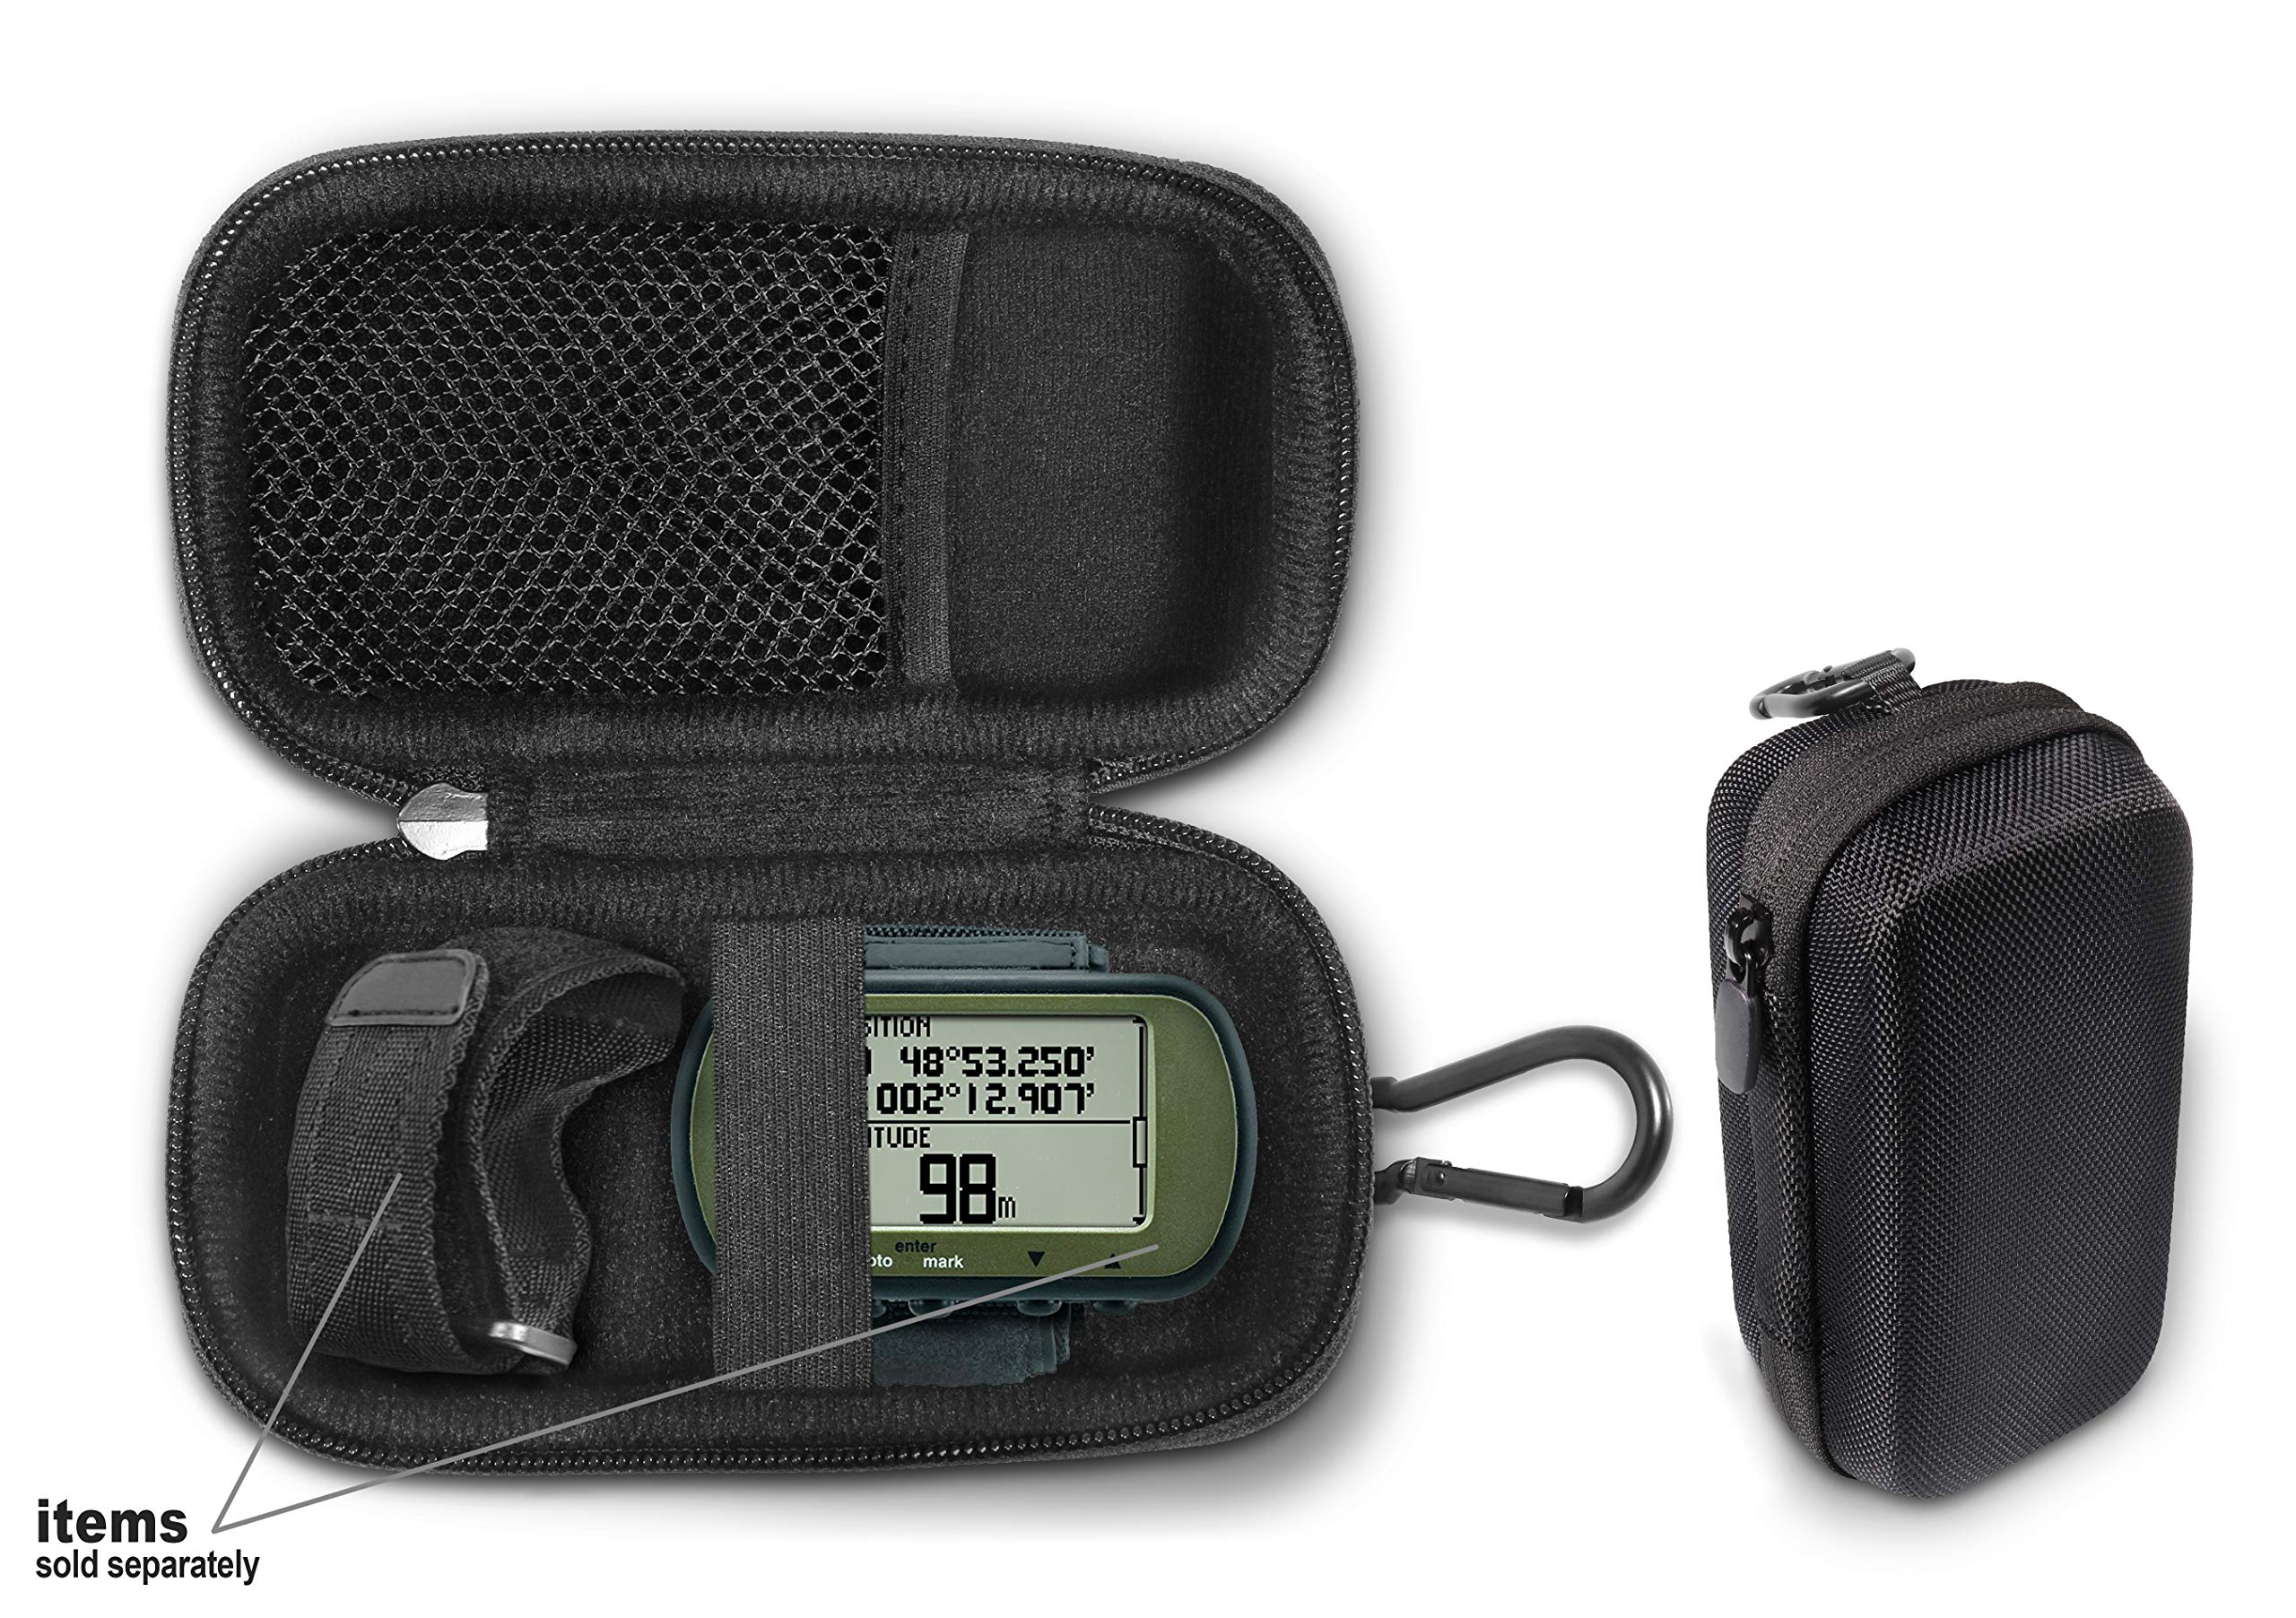 Hiking GPS Case Compatible with Garmin Foretrex 401, 301, 201, 601, 701 Hands-Free GPS, Wrist-Mounted Navigator, Compact and Light Weight Strong case for Excellent Protection and Easy Carrying by CaseSack